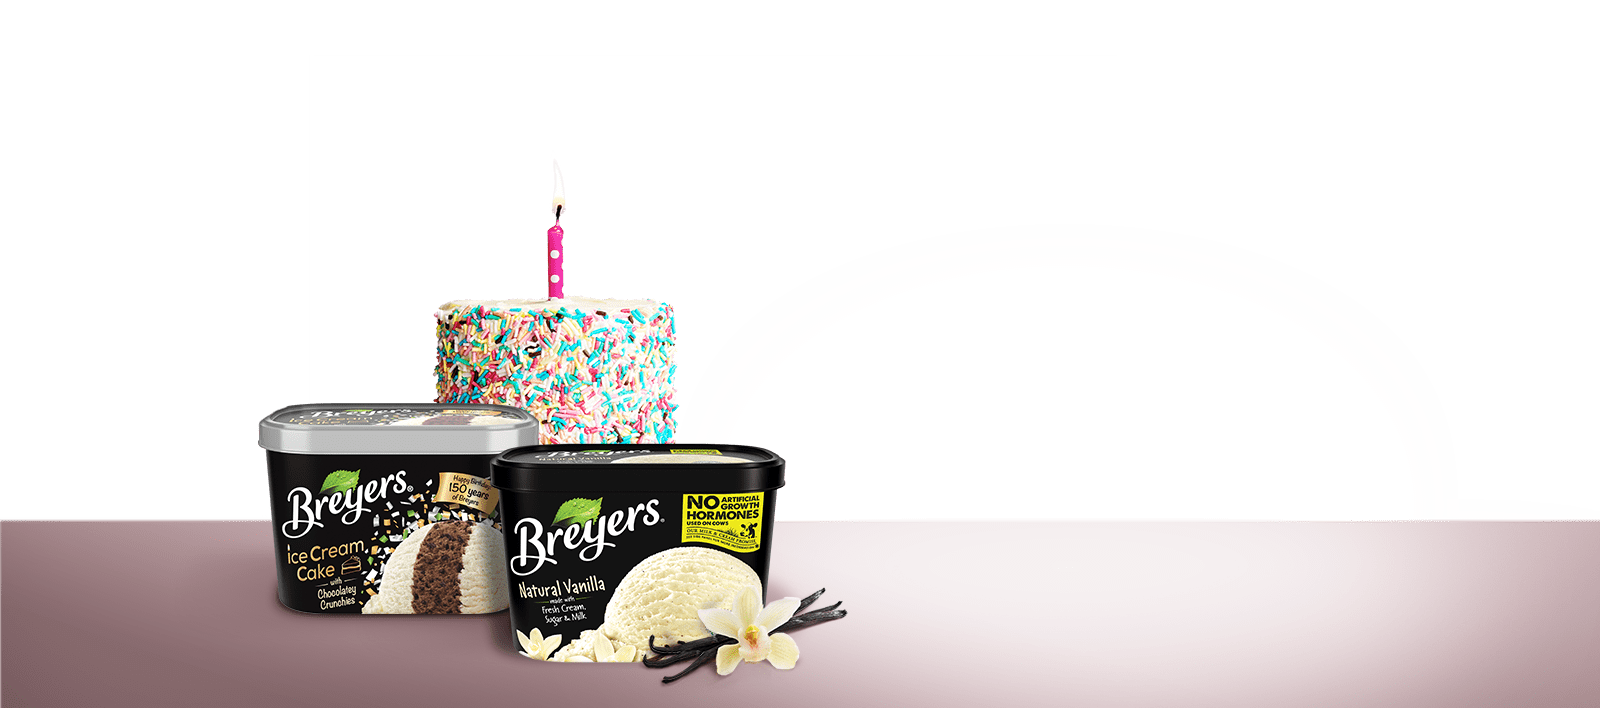 Win a Family Vacation to a Six Flags Theme Park & Breyers Prizes